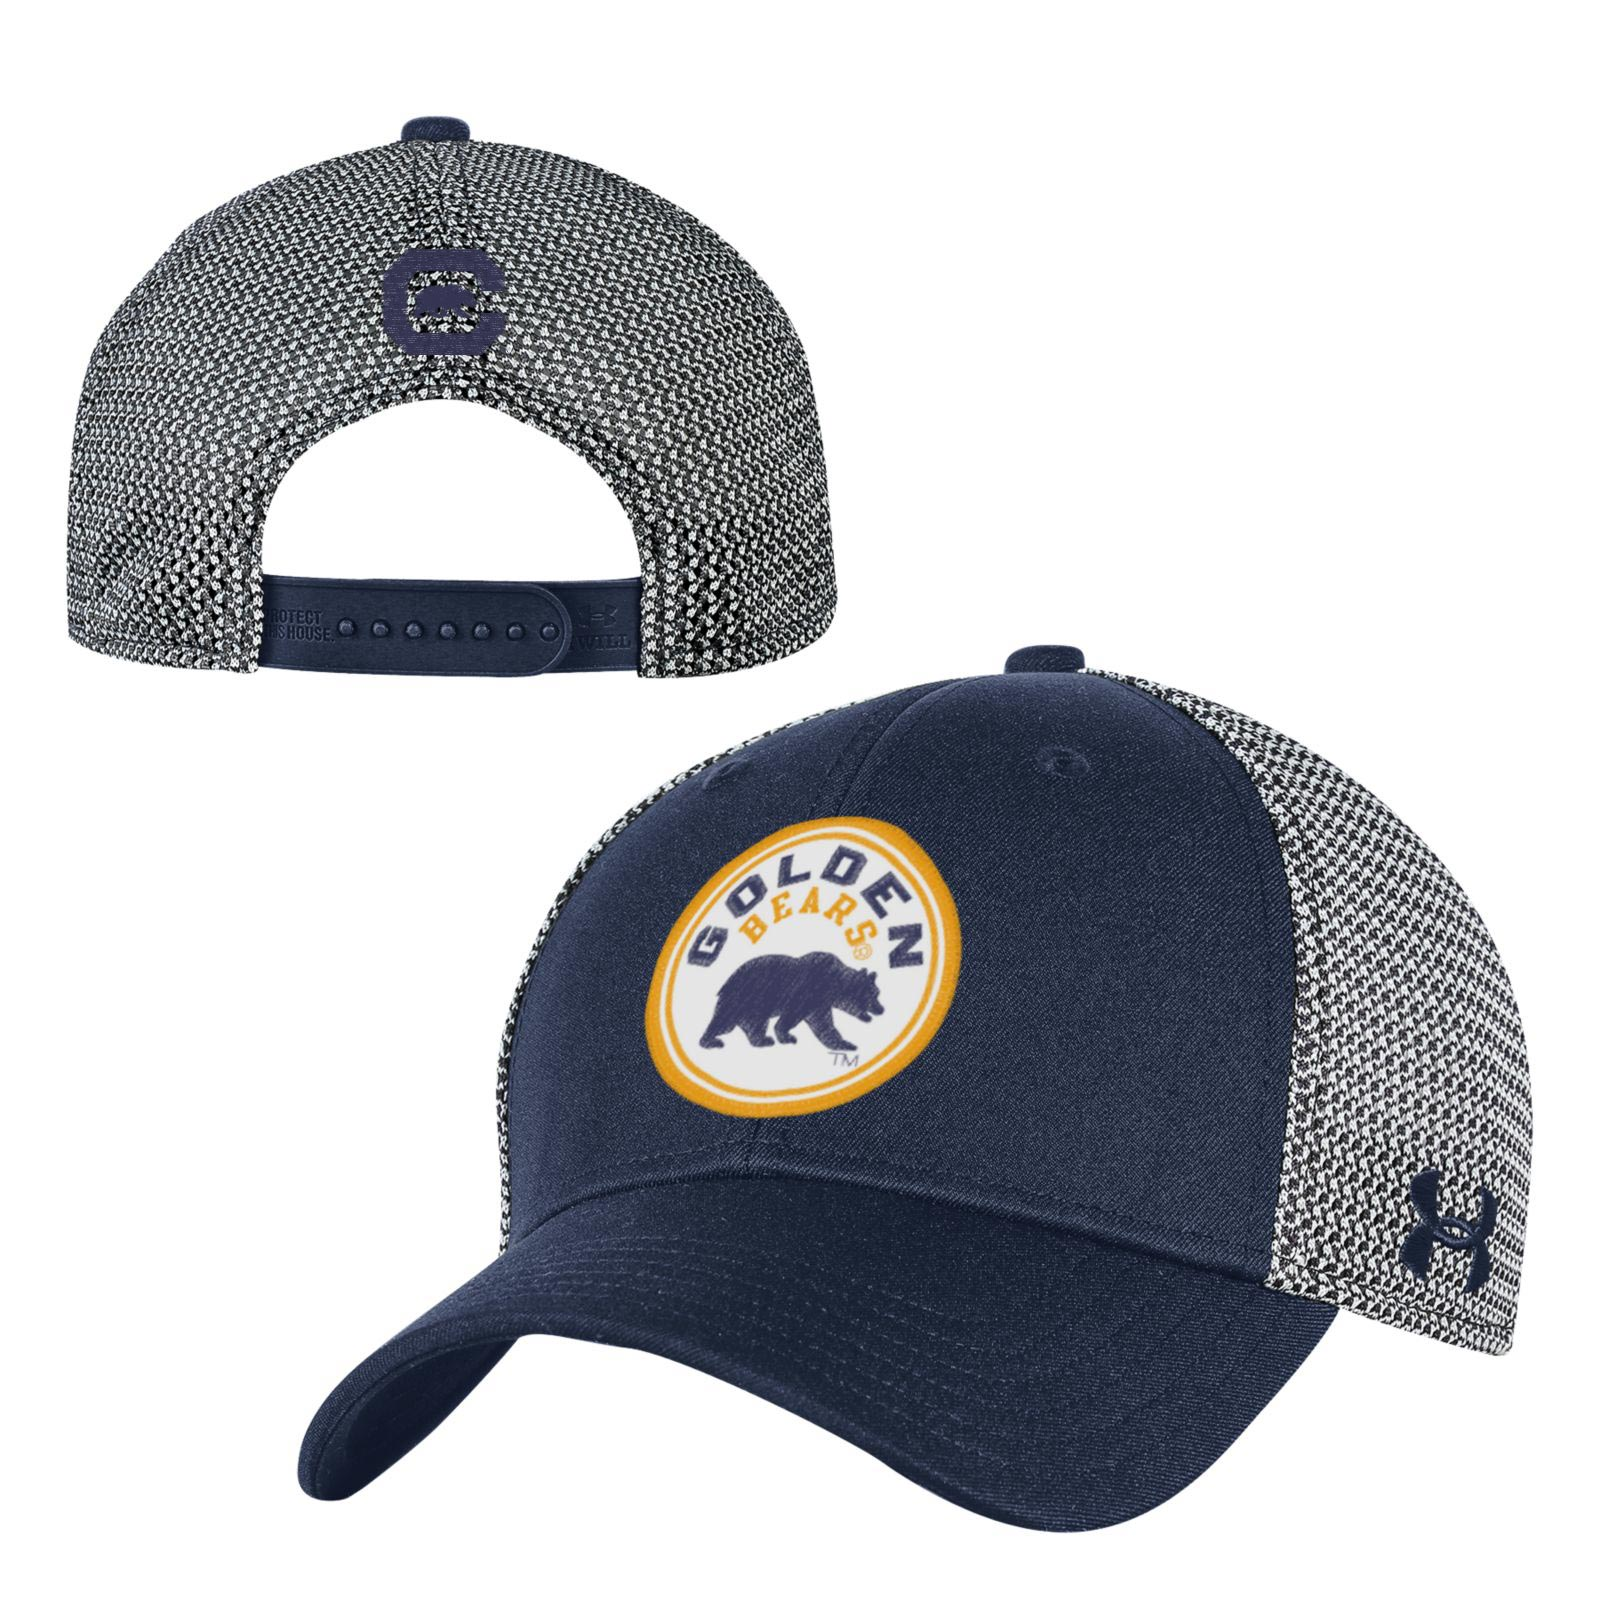 University of California Berkeley Under Armour Men's Mesh Knit Snapback